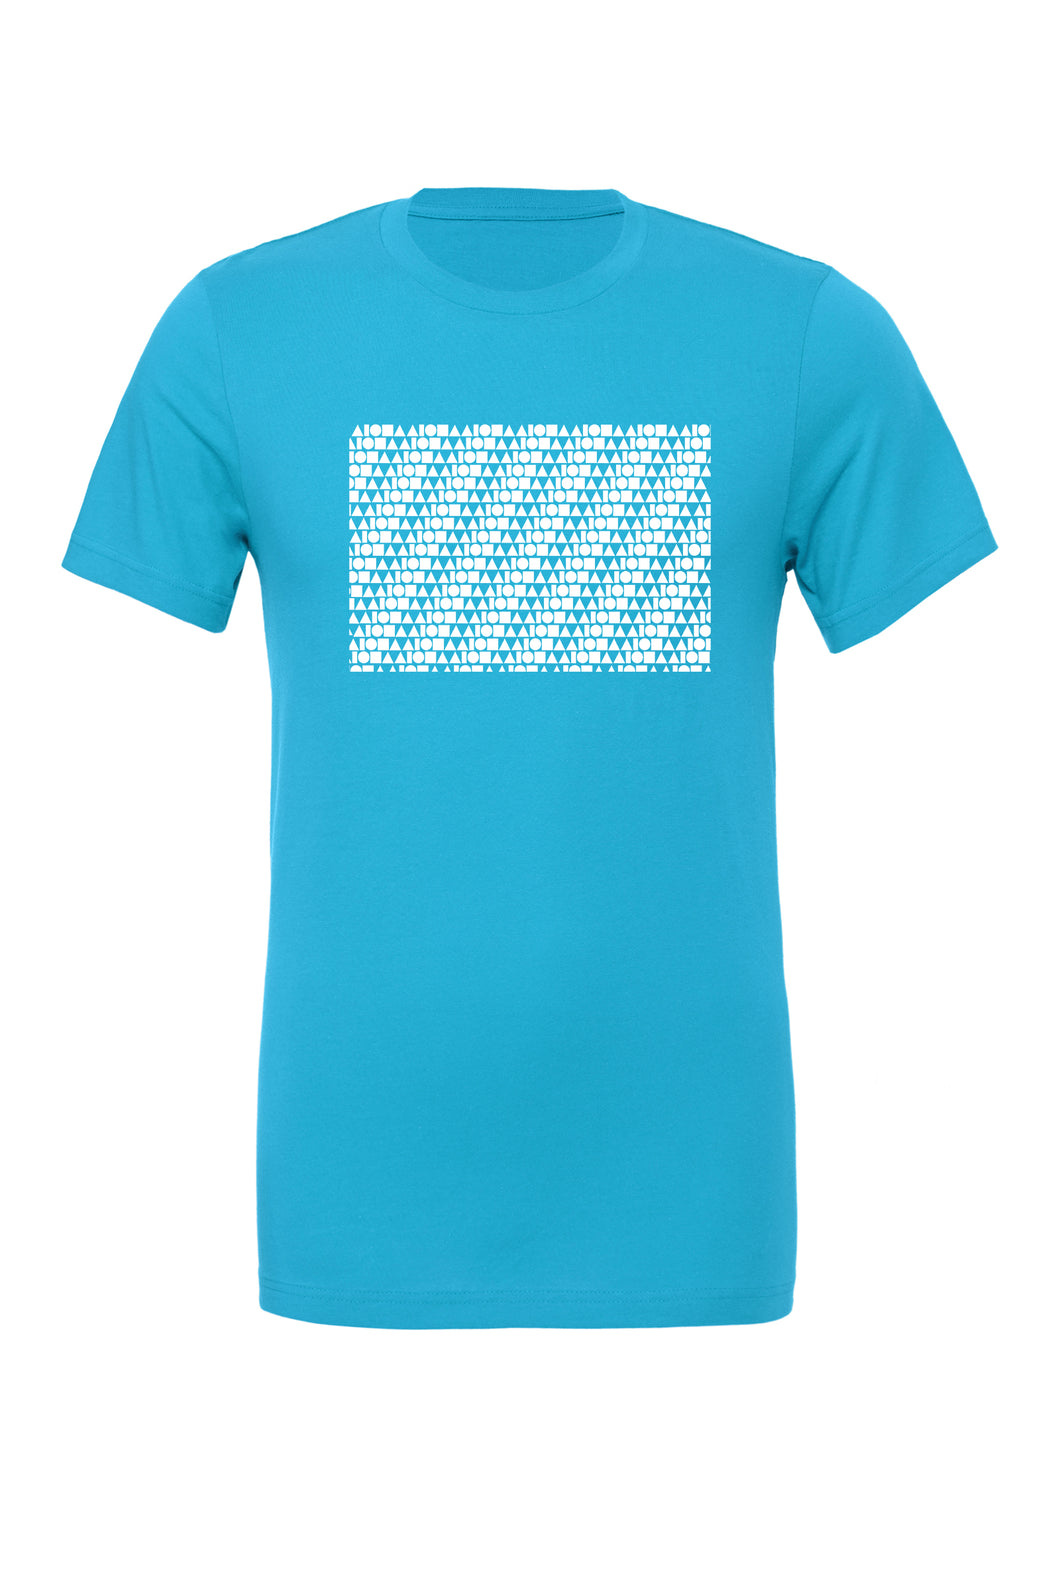 Repeat Aloha Shapes Aqua & White Unisex T-shirt